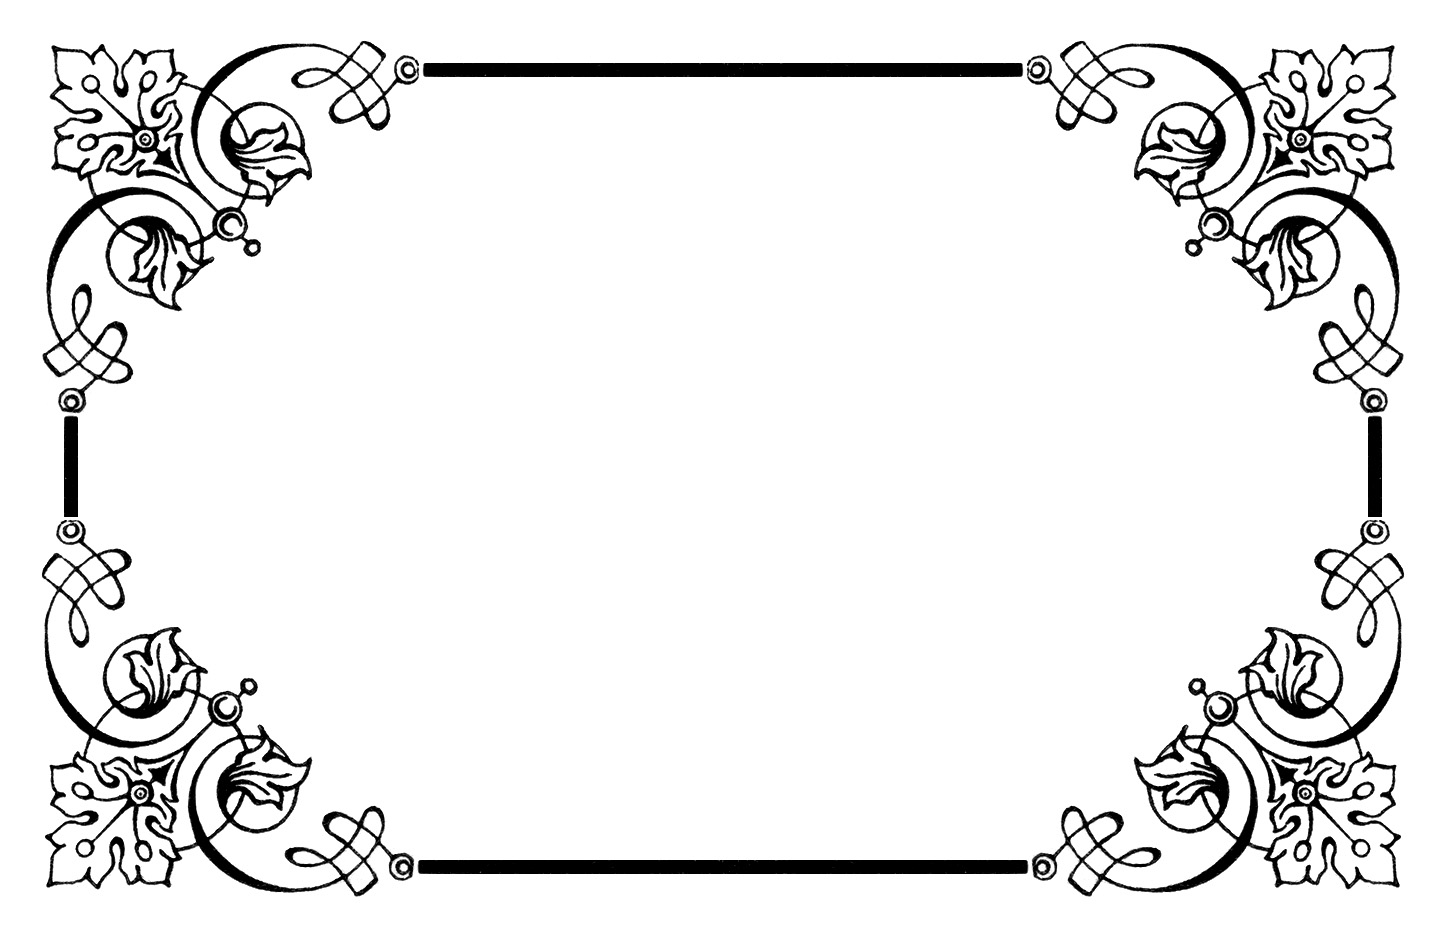 Free Wedding Page Border Download Free Clip Art Free Clip Art On Clipart Library